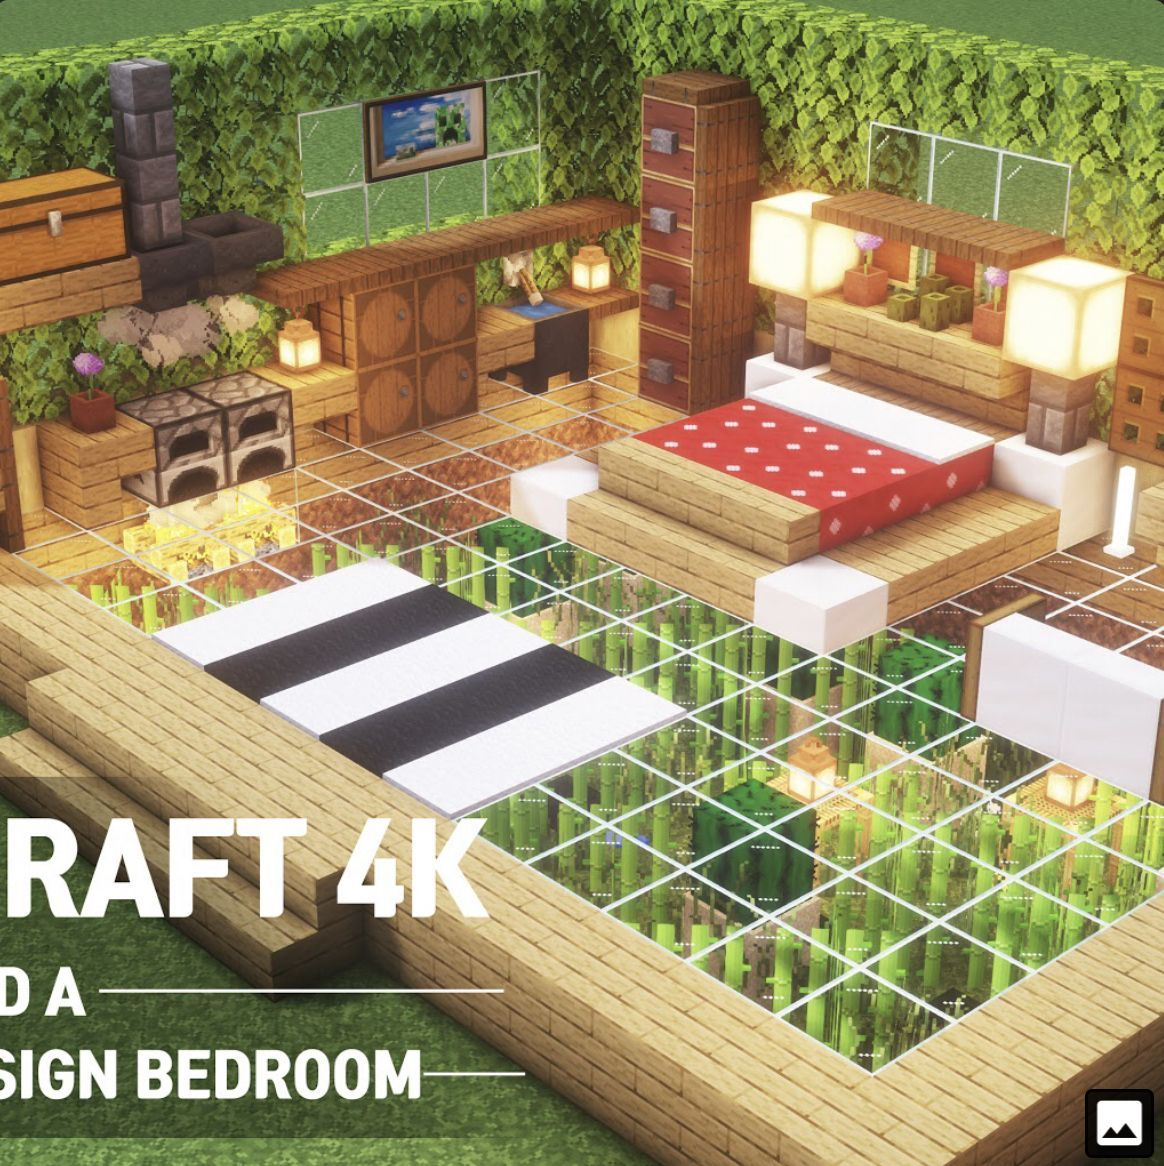 Minecraft Desing Bedroom Bedroom Desing Minecraft Minecraftcreations Minecraft Houses Easy Minecraft Houses Minecraft Decorations